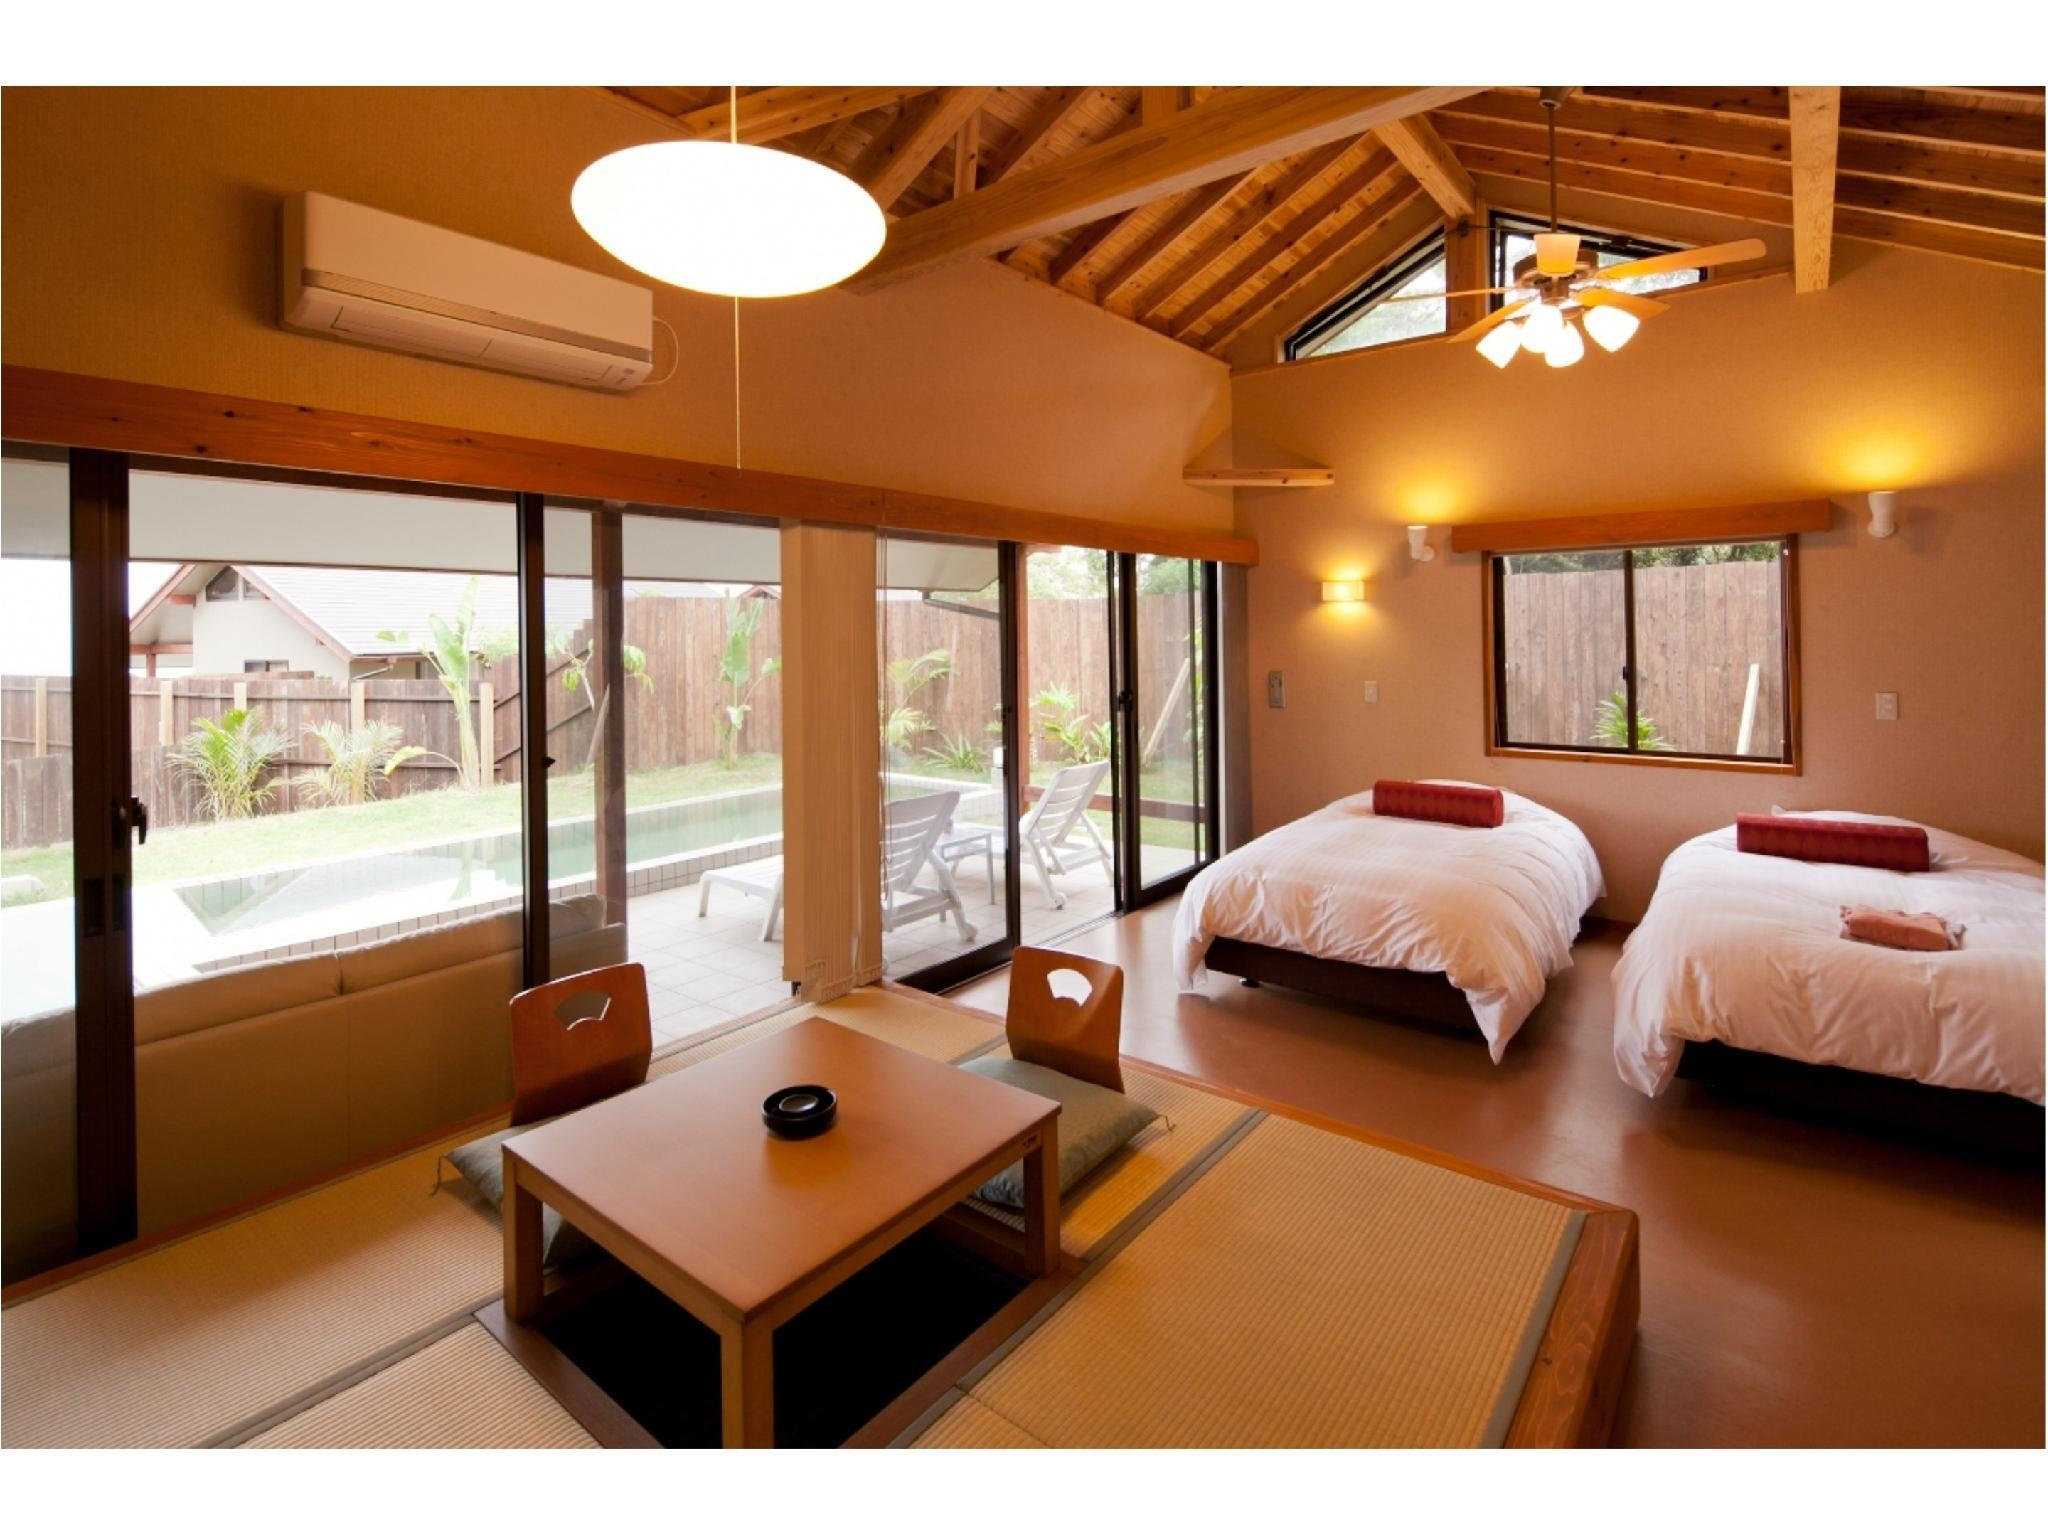 独立房(薩摩别墅+温泉泳池+露天风吕) (Detached Satsuma Villa Deluxe Room with Hot Spring Pool & Open-air Bath)